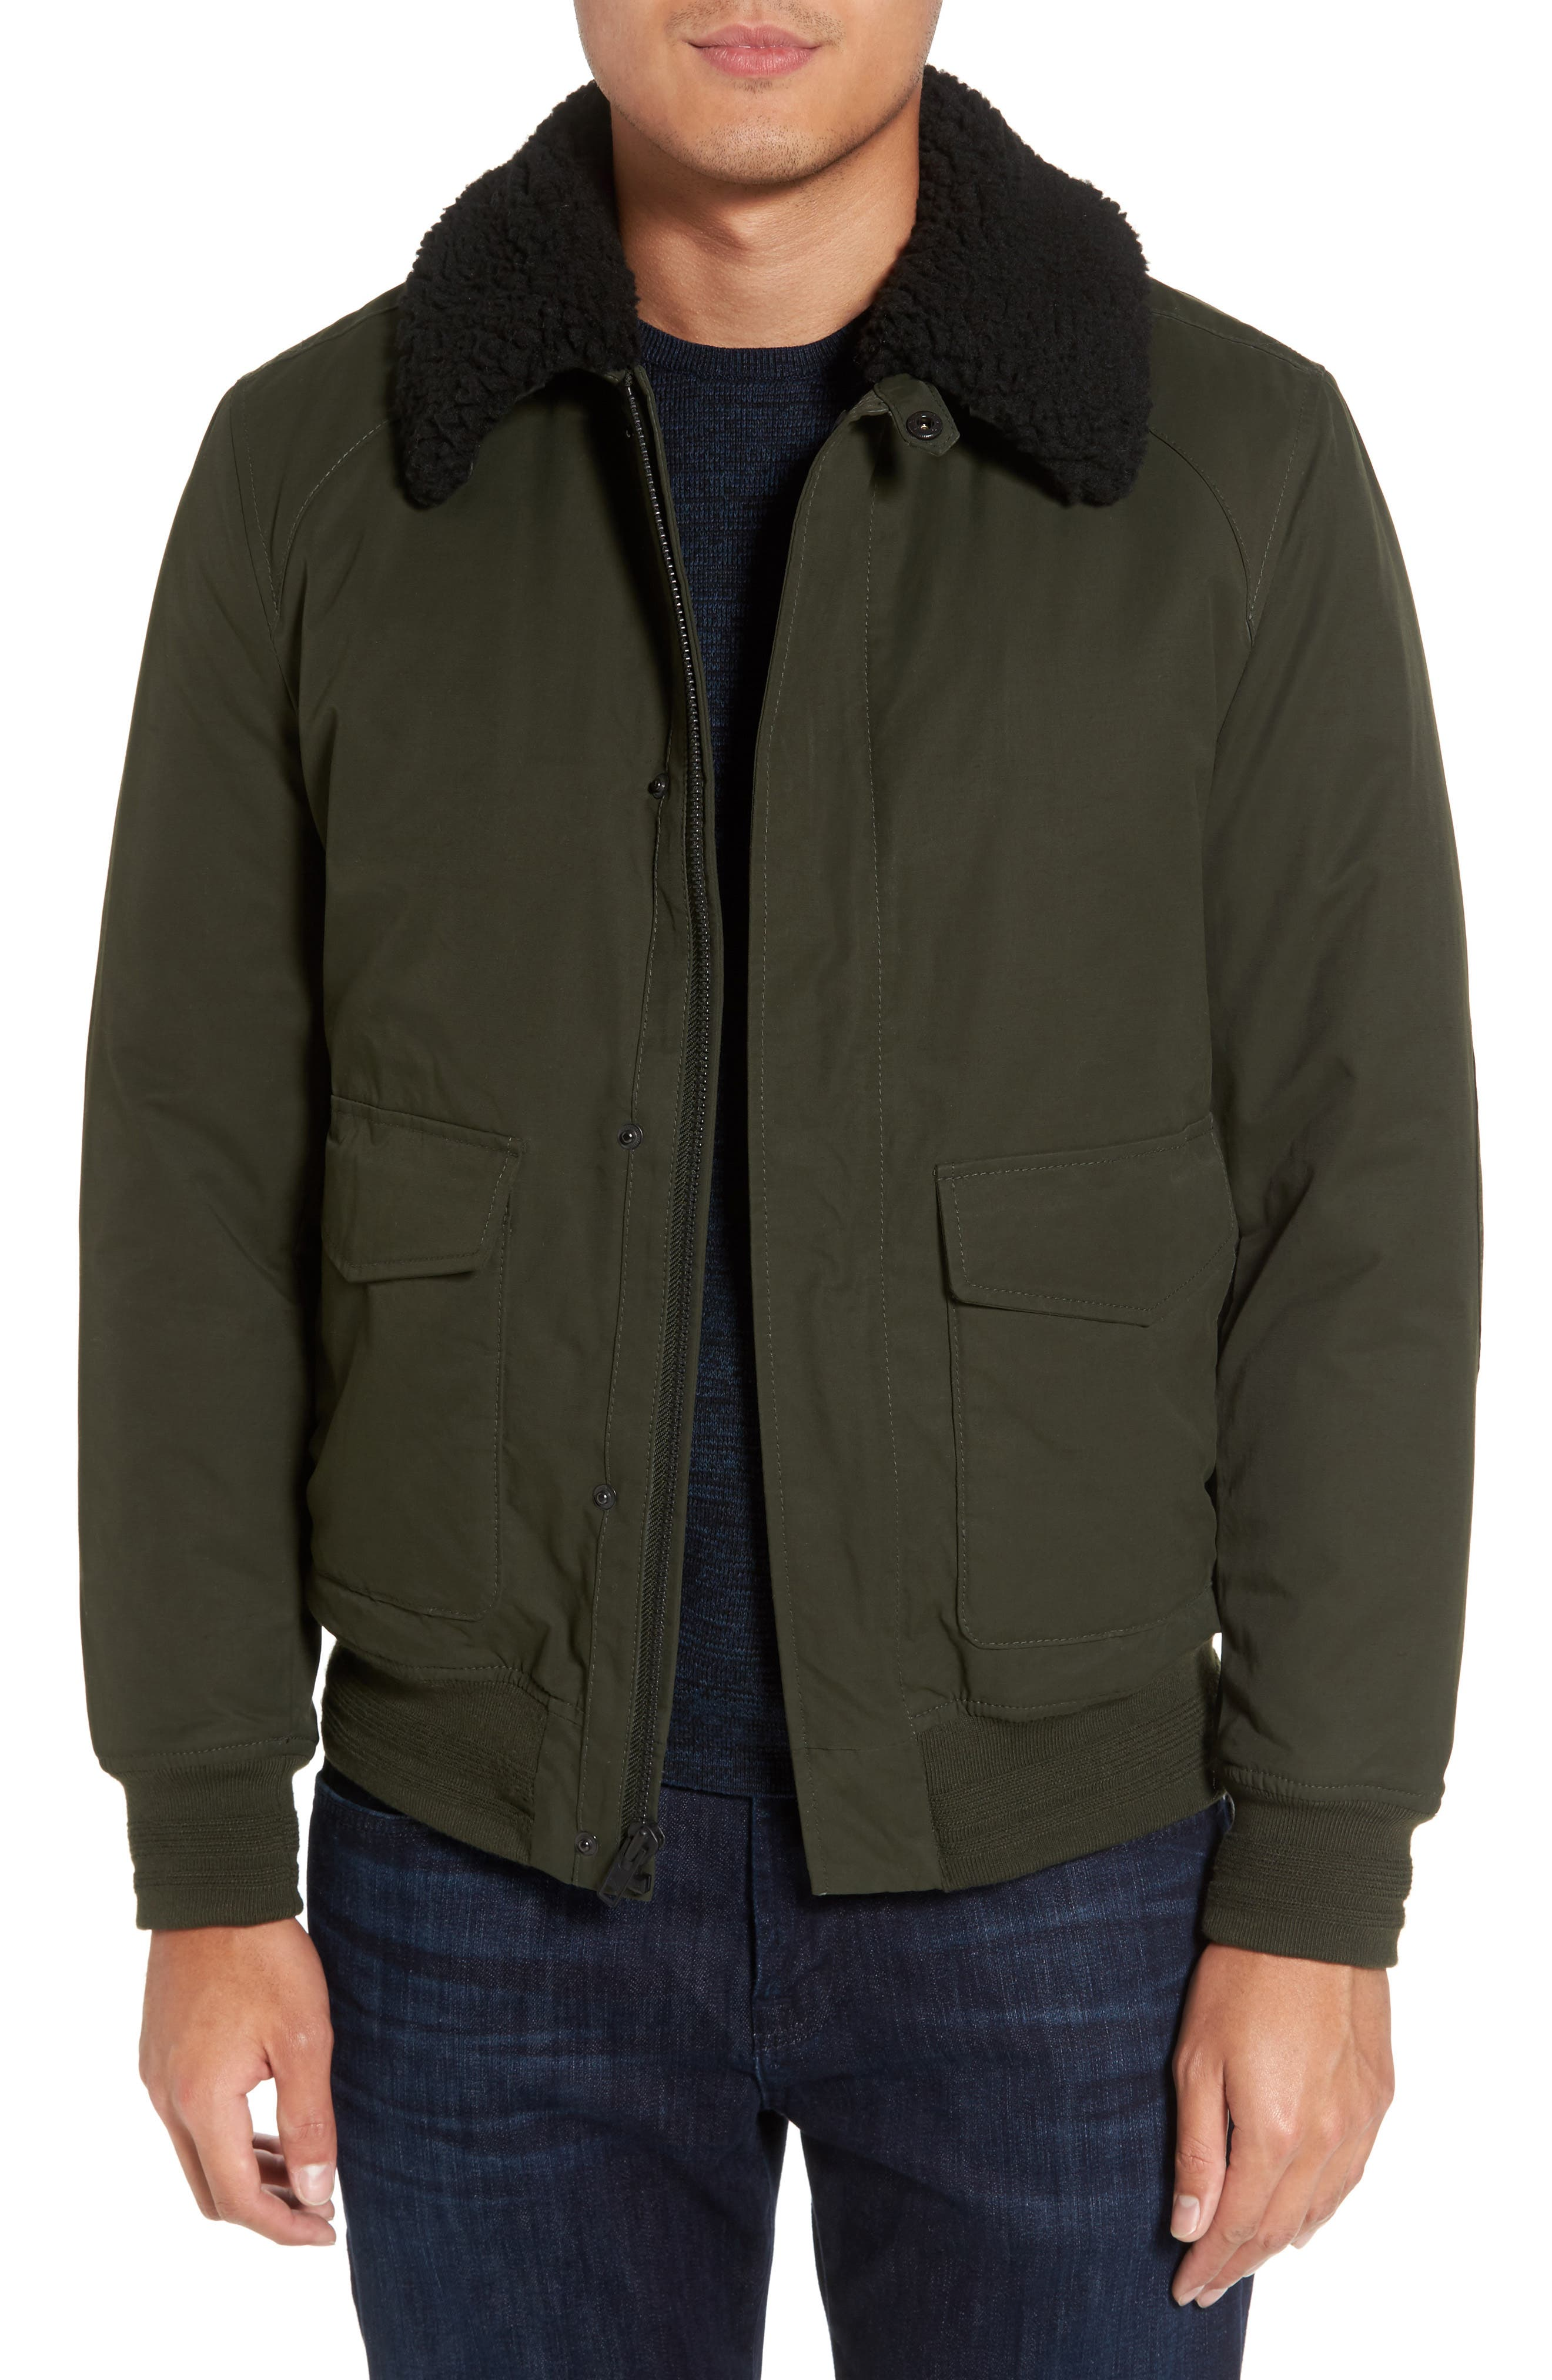 Main Image - Calibrate Flight Bomber Jacket with Faux Shearling Trim